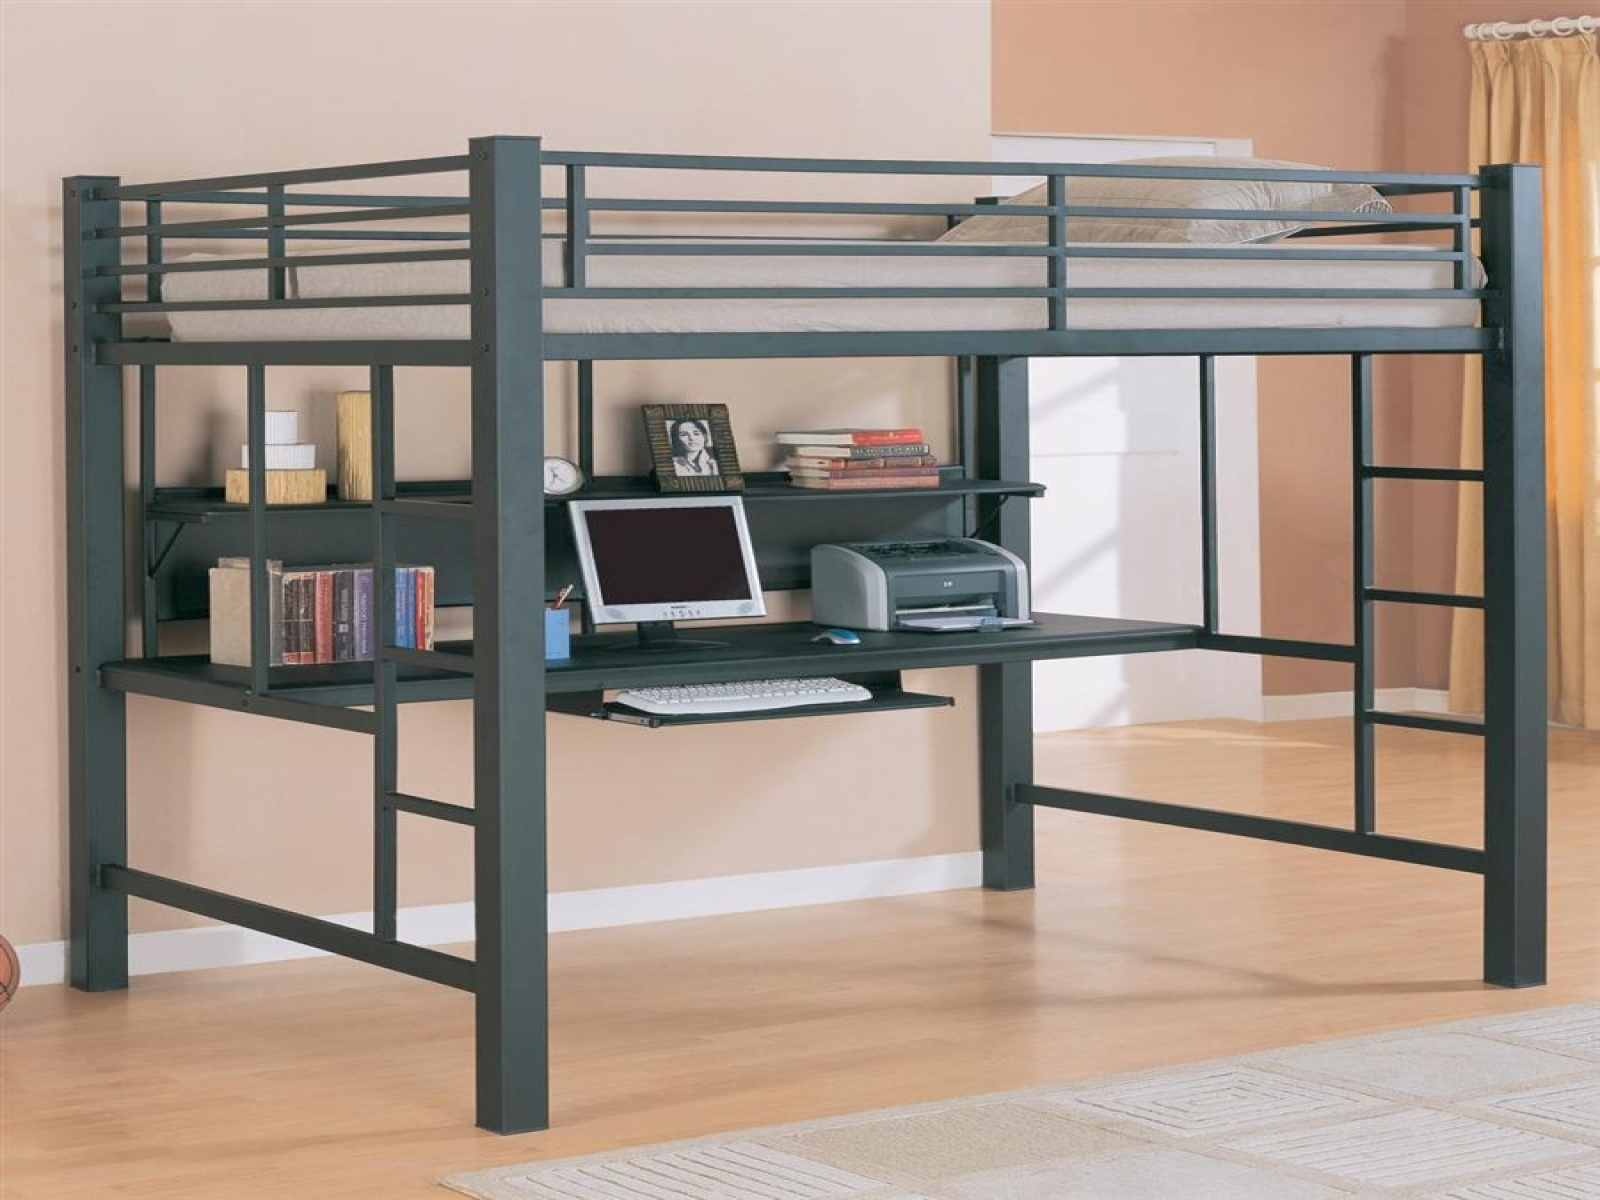 Permalink to Space Saver Bed Frame